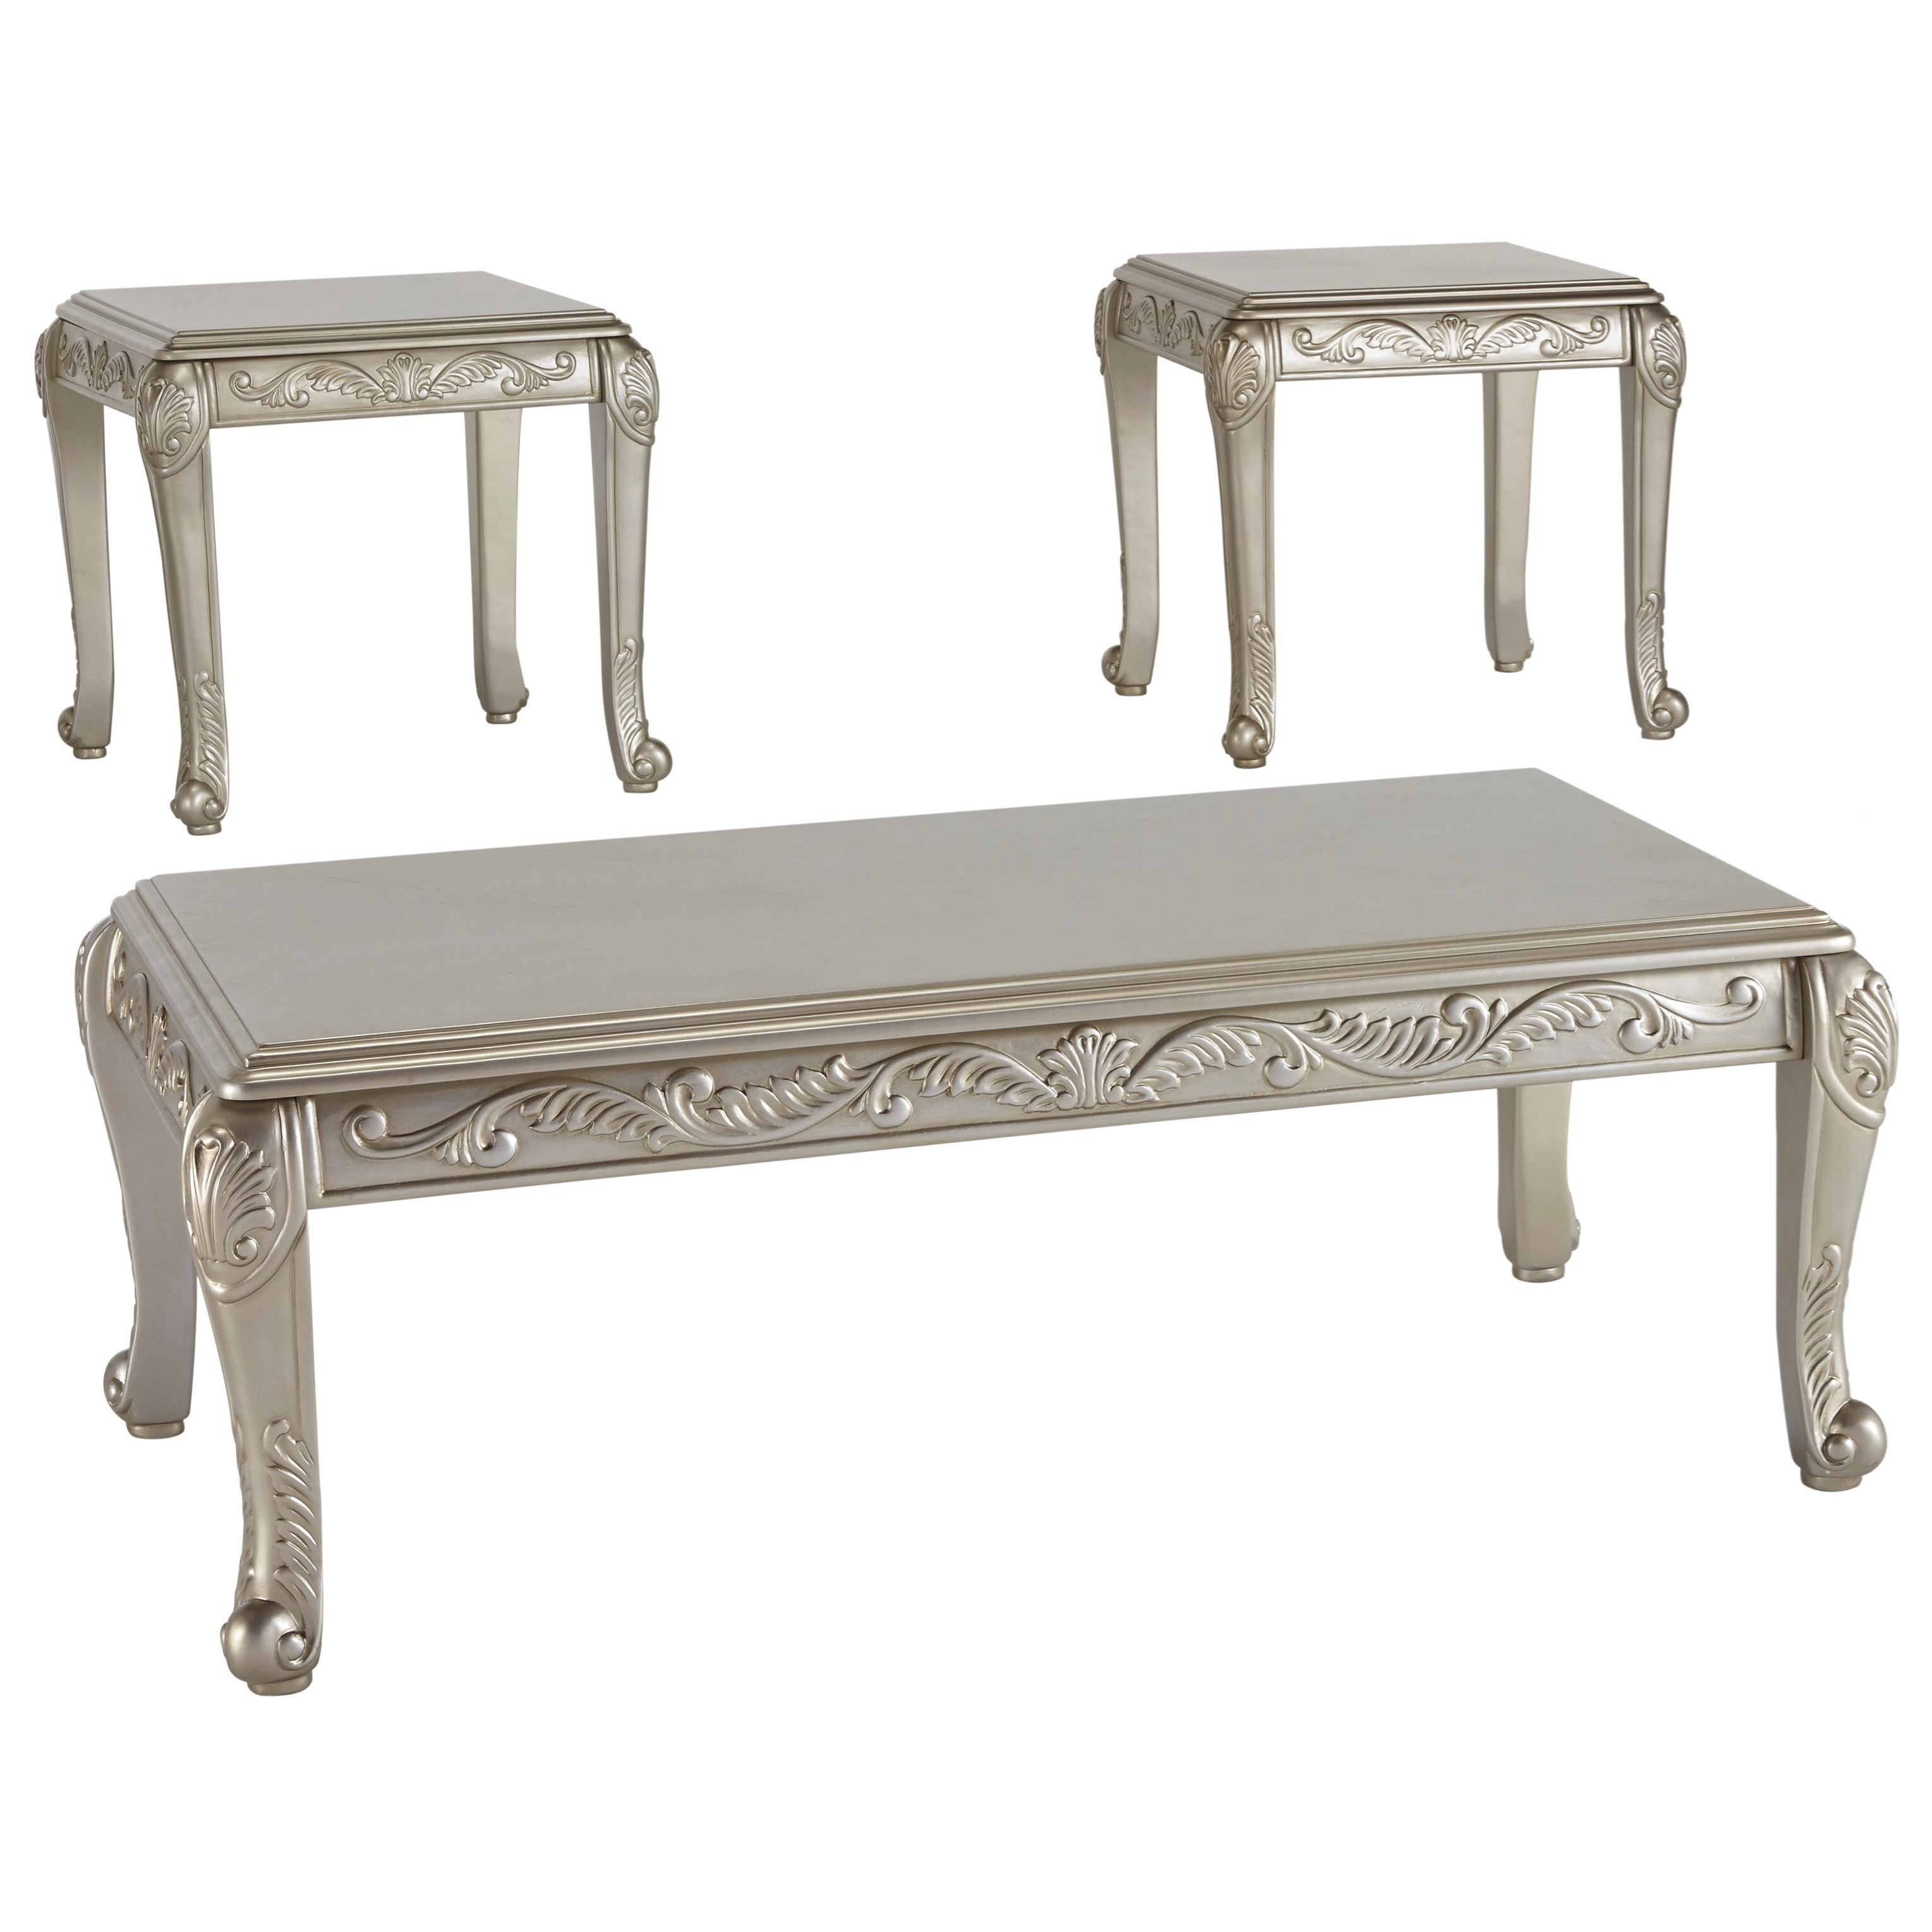 Signature Design by Ashley Verickam Occasional Table Set - Item Number: T340-13